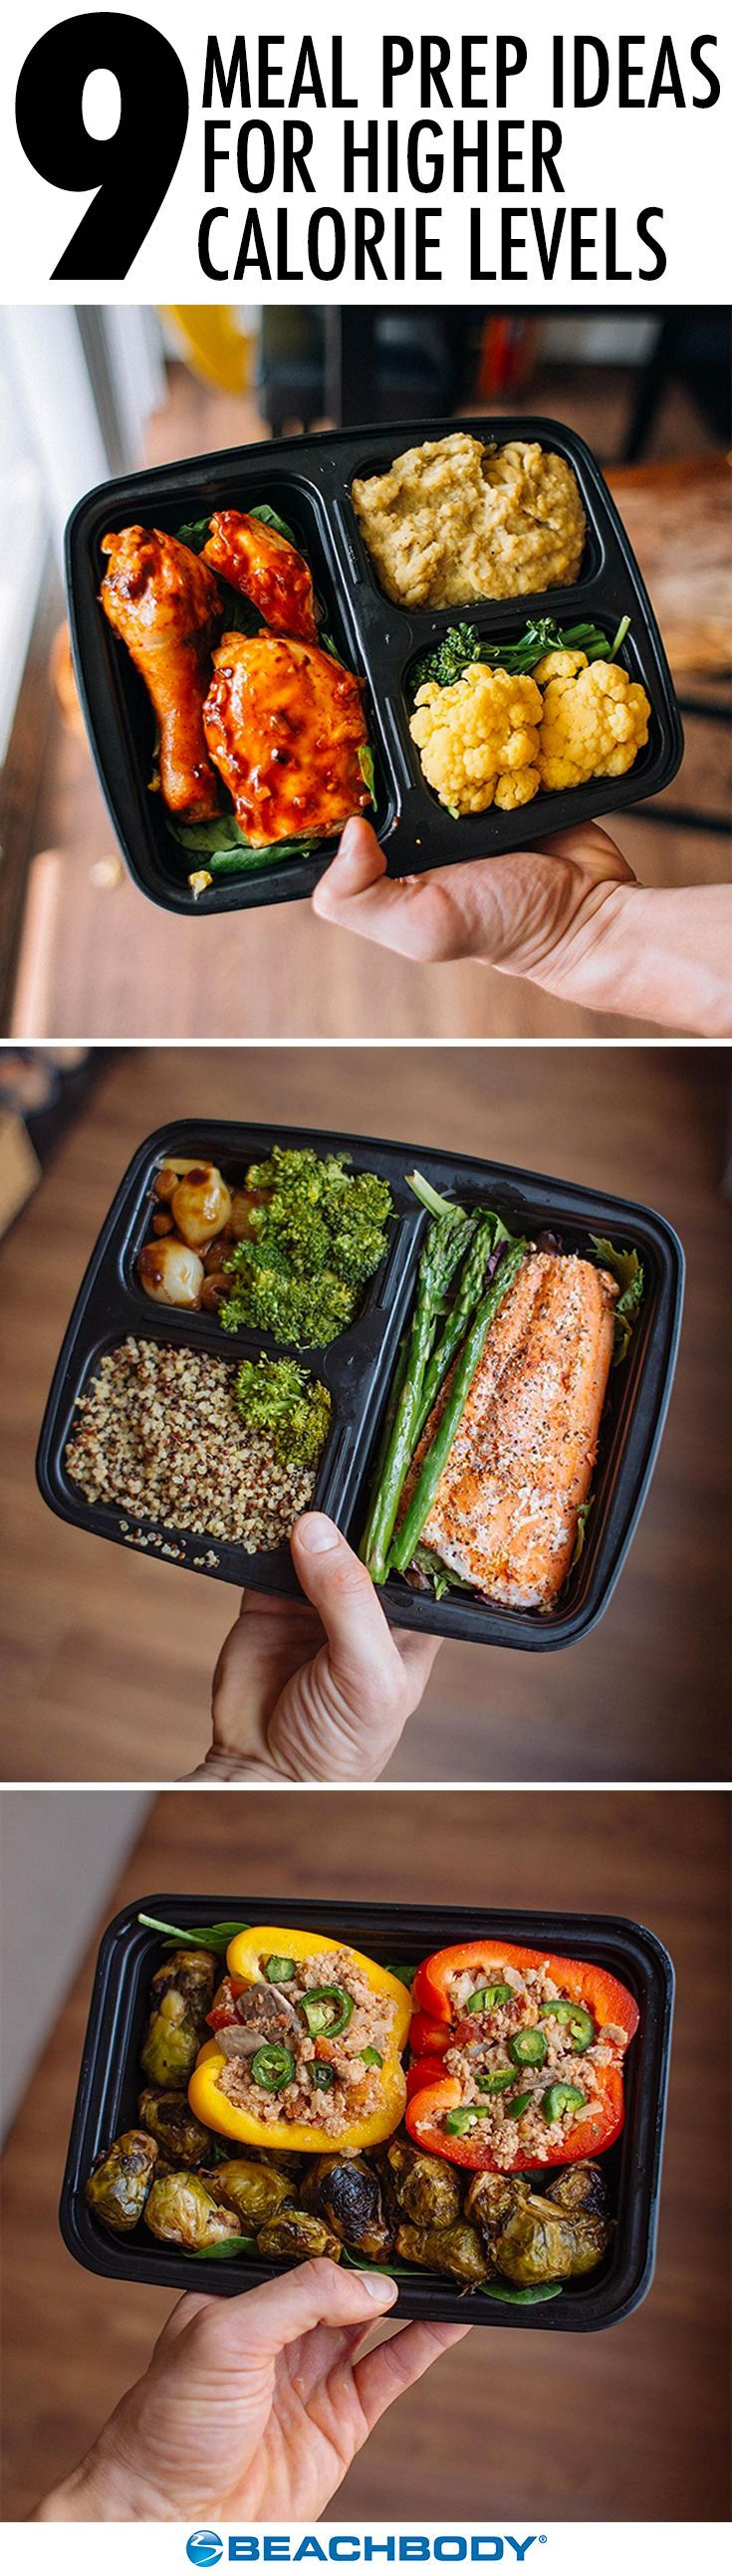 Prep Ideas for Higher Calorie Levels When you're trying to pack on muscle, you have to fuel your body with lots of high-quality food. Meal prepping can help you hit your calorie requirements with healthy food that's also delicious. Here are nine tasty meals for you to try!When you're trying to pack on muscle, you have to fue...